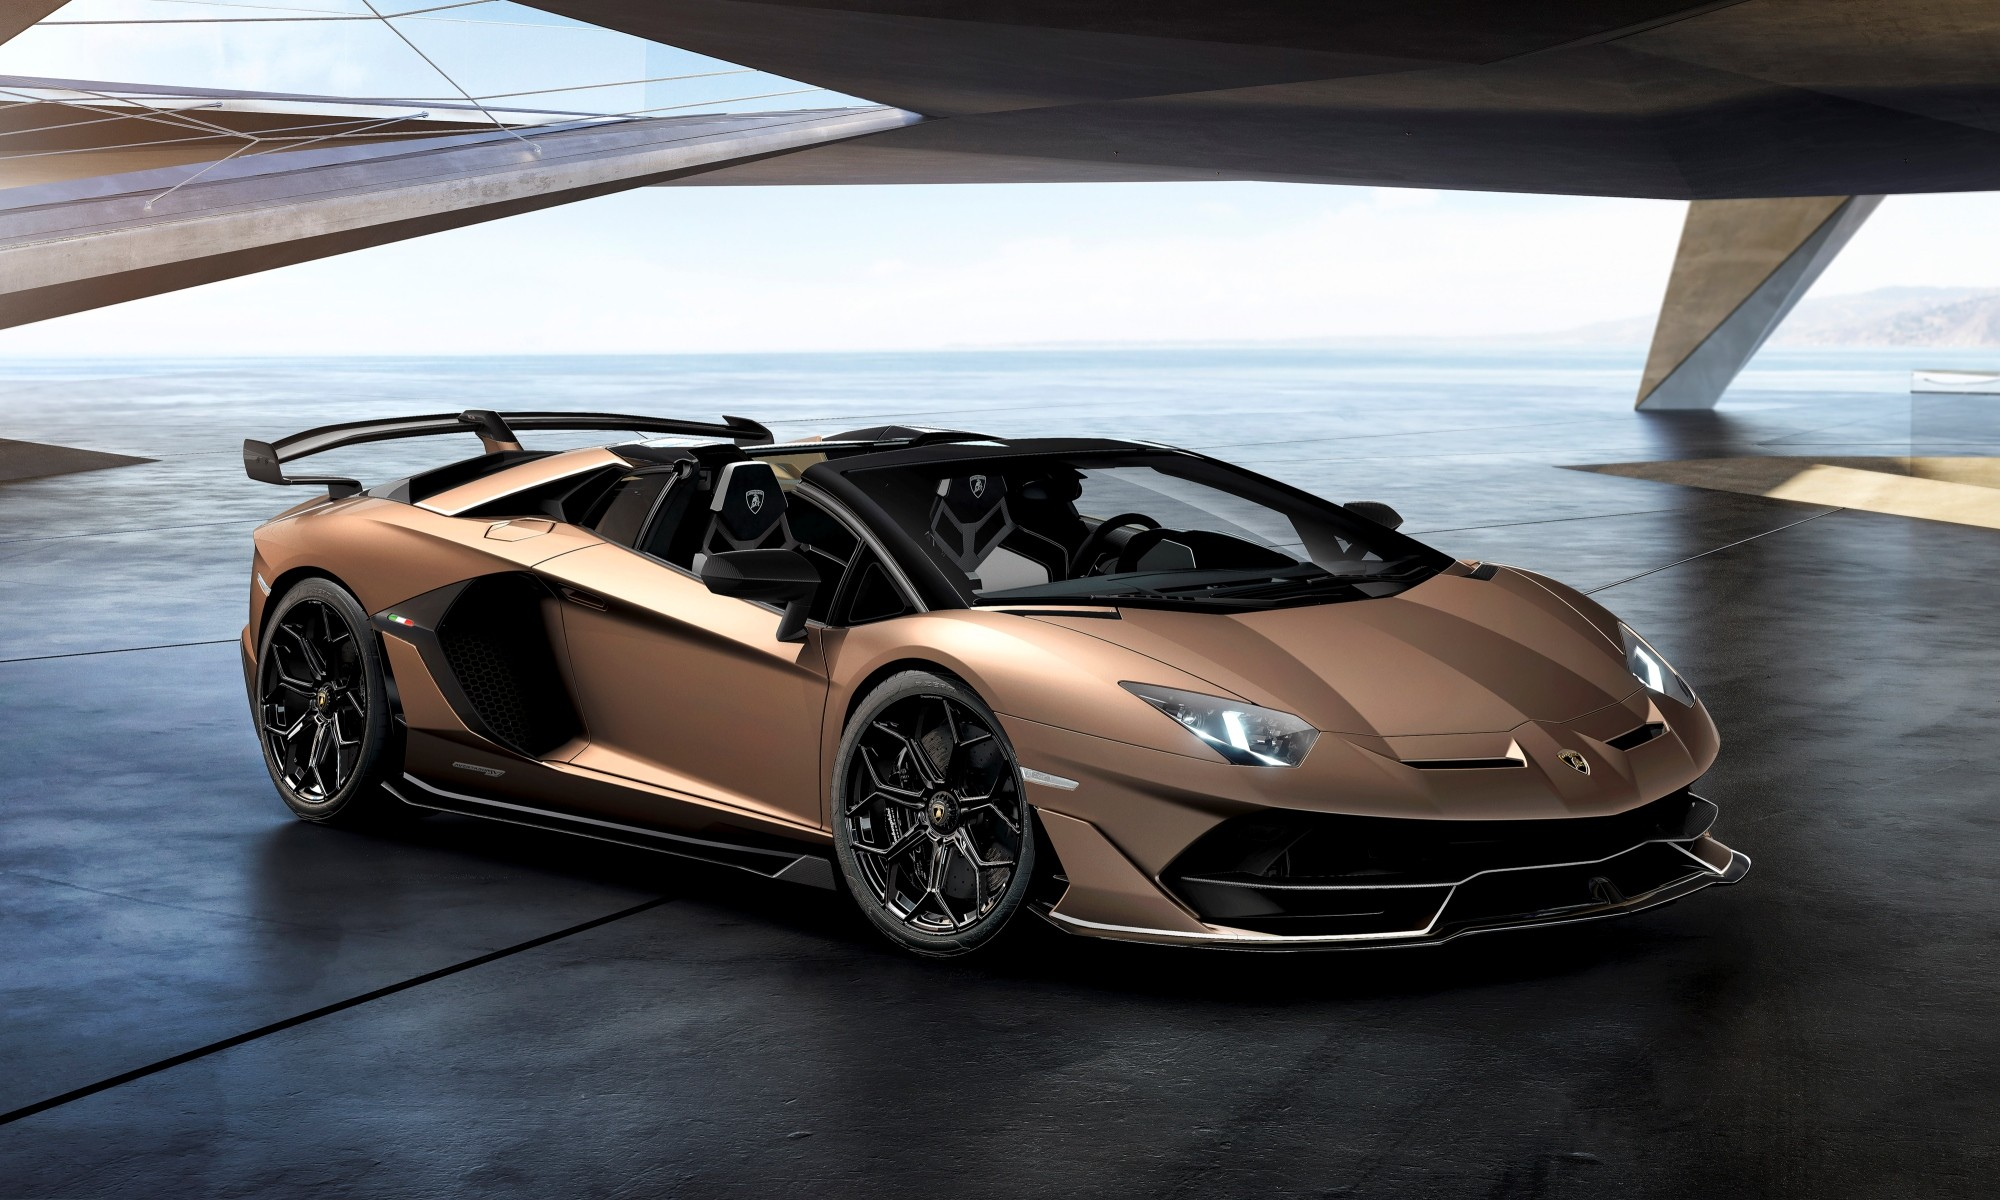 Lamborghini Aventador Svj Roadster Launched At Geneva Motor Show